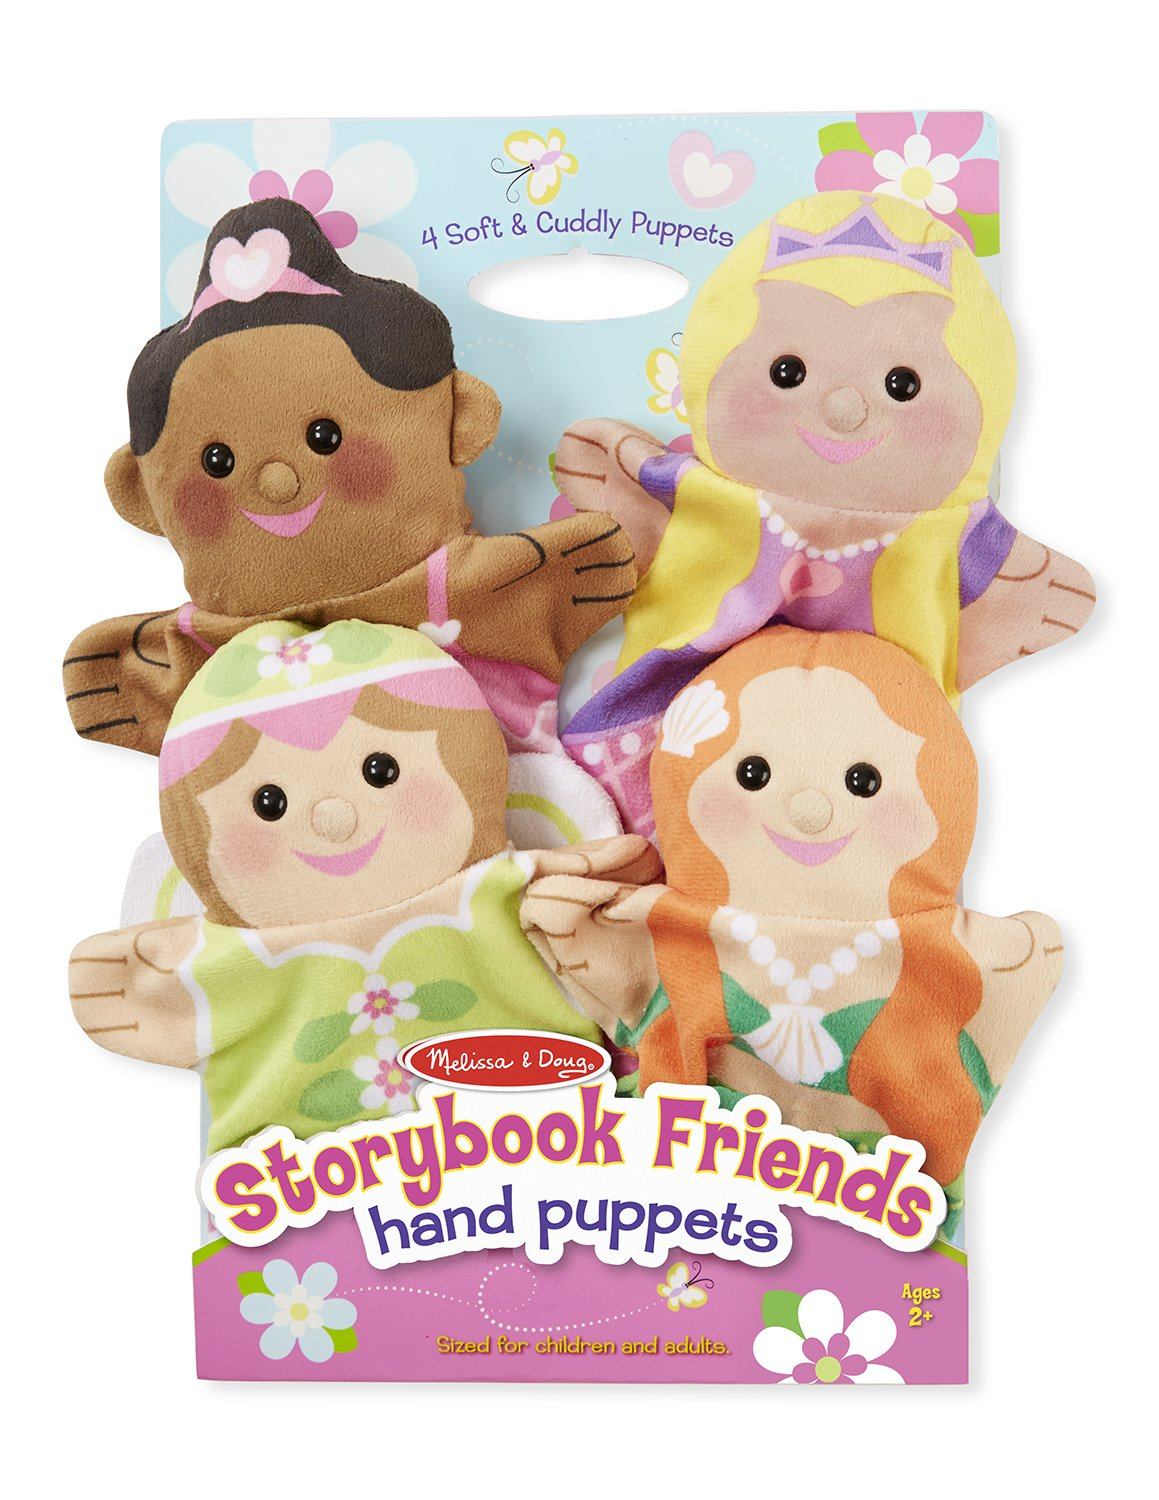 Melissa & Doug Storybook Friends Hand Puppets (Set of 4) - Princess, Fairy, Mermaid, and Ballerina